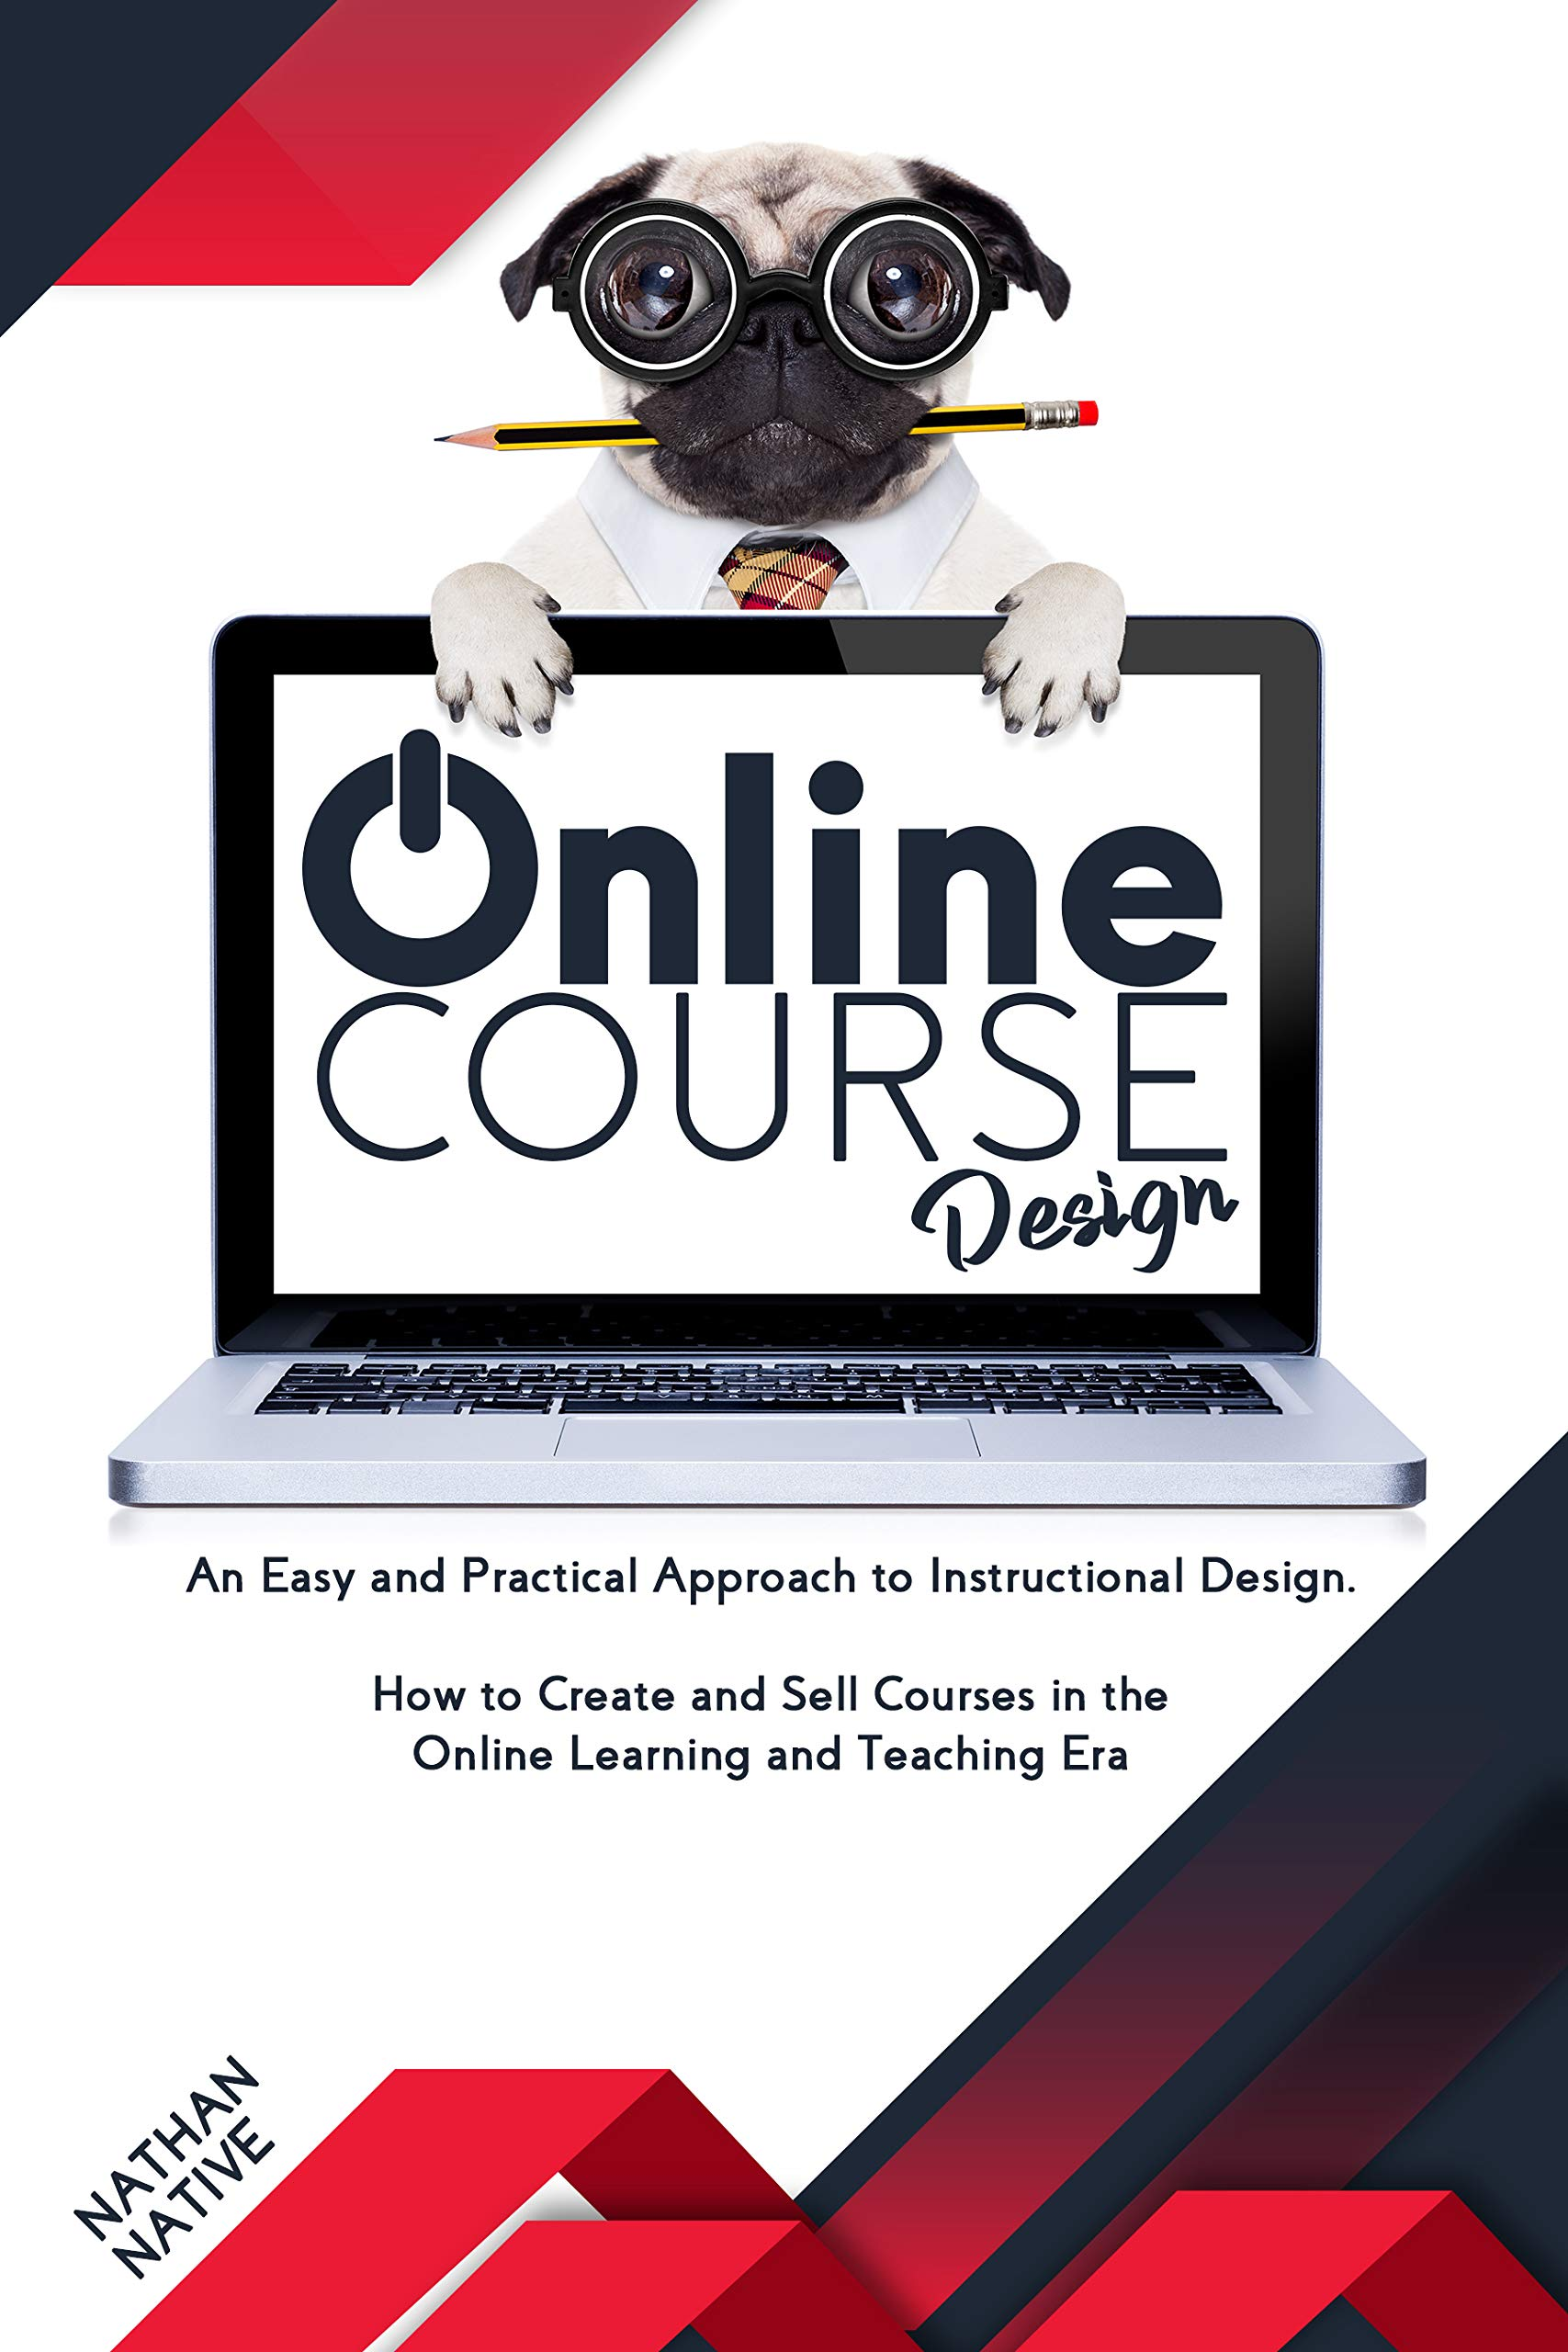 ONLINE COURSE DESIGN: An Easy And Practical Approach To Instructional Design And How To Create And Sell Courses In The Online Learning And Teaching Era